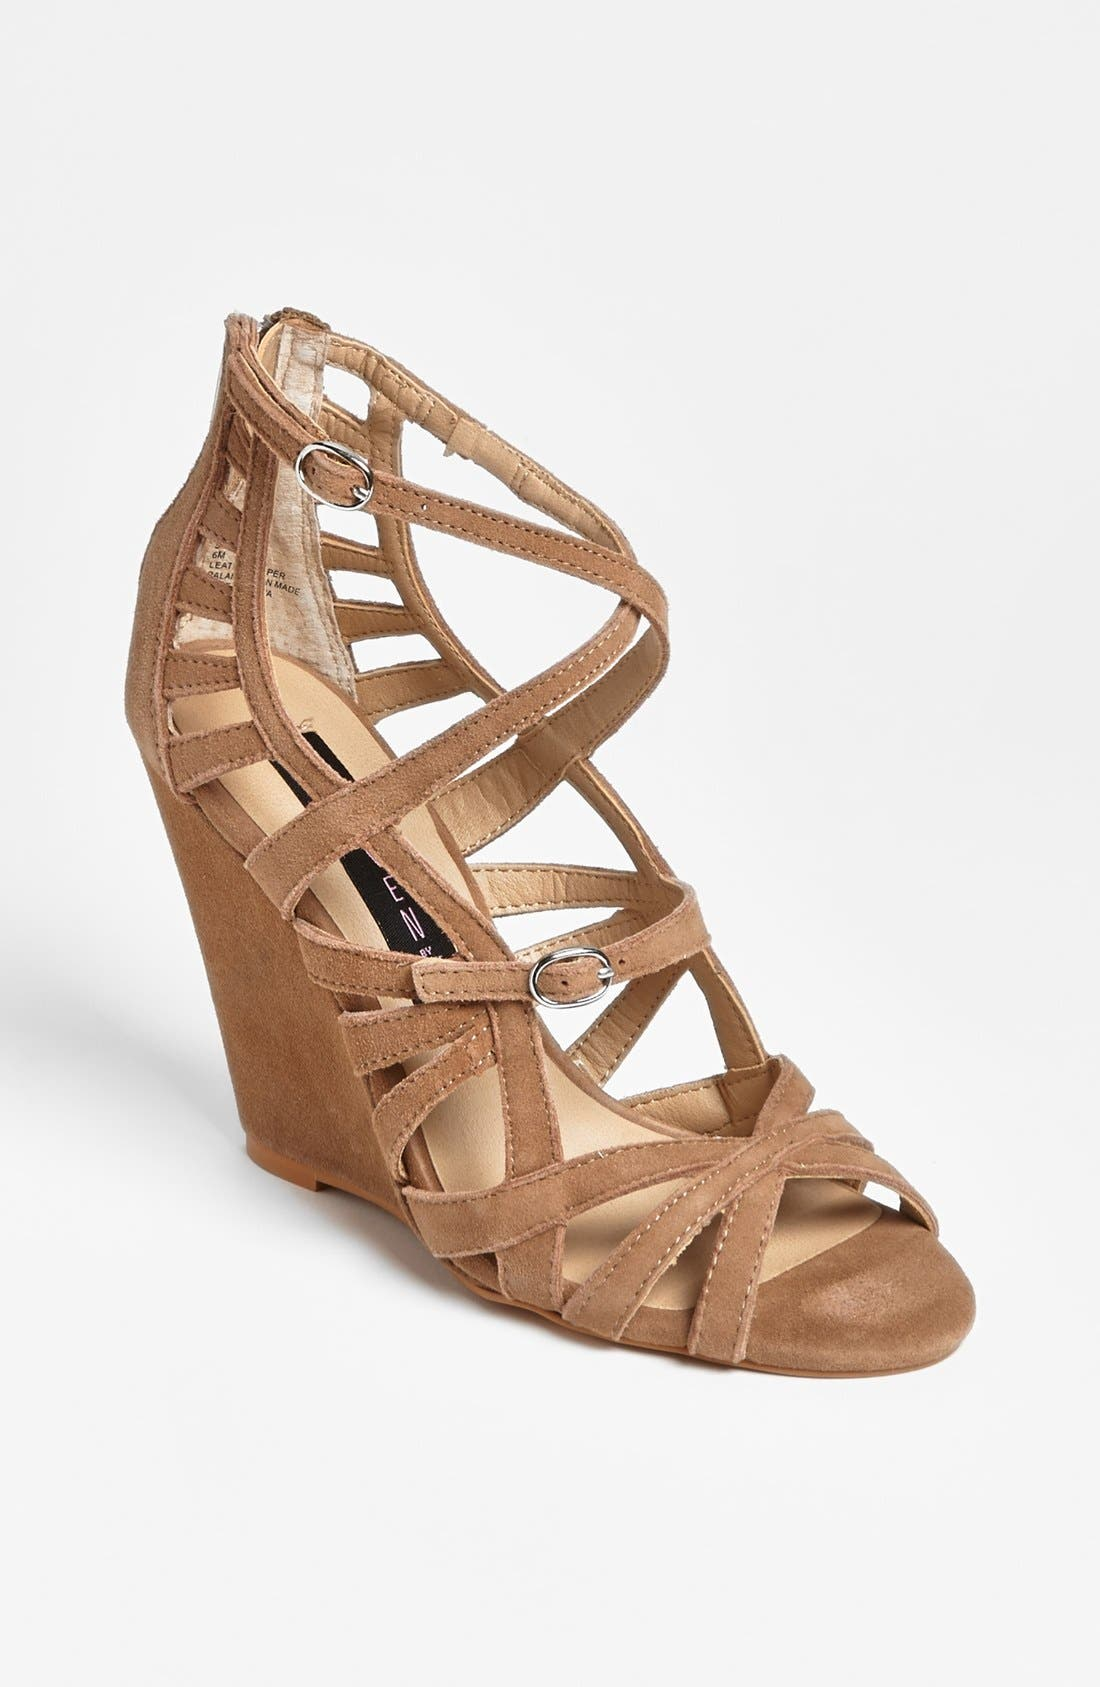 Alternate Image 1 Selected - Steven by Steve Madden 'Stellir' Wedge Sandal